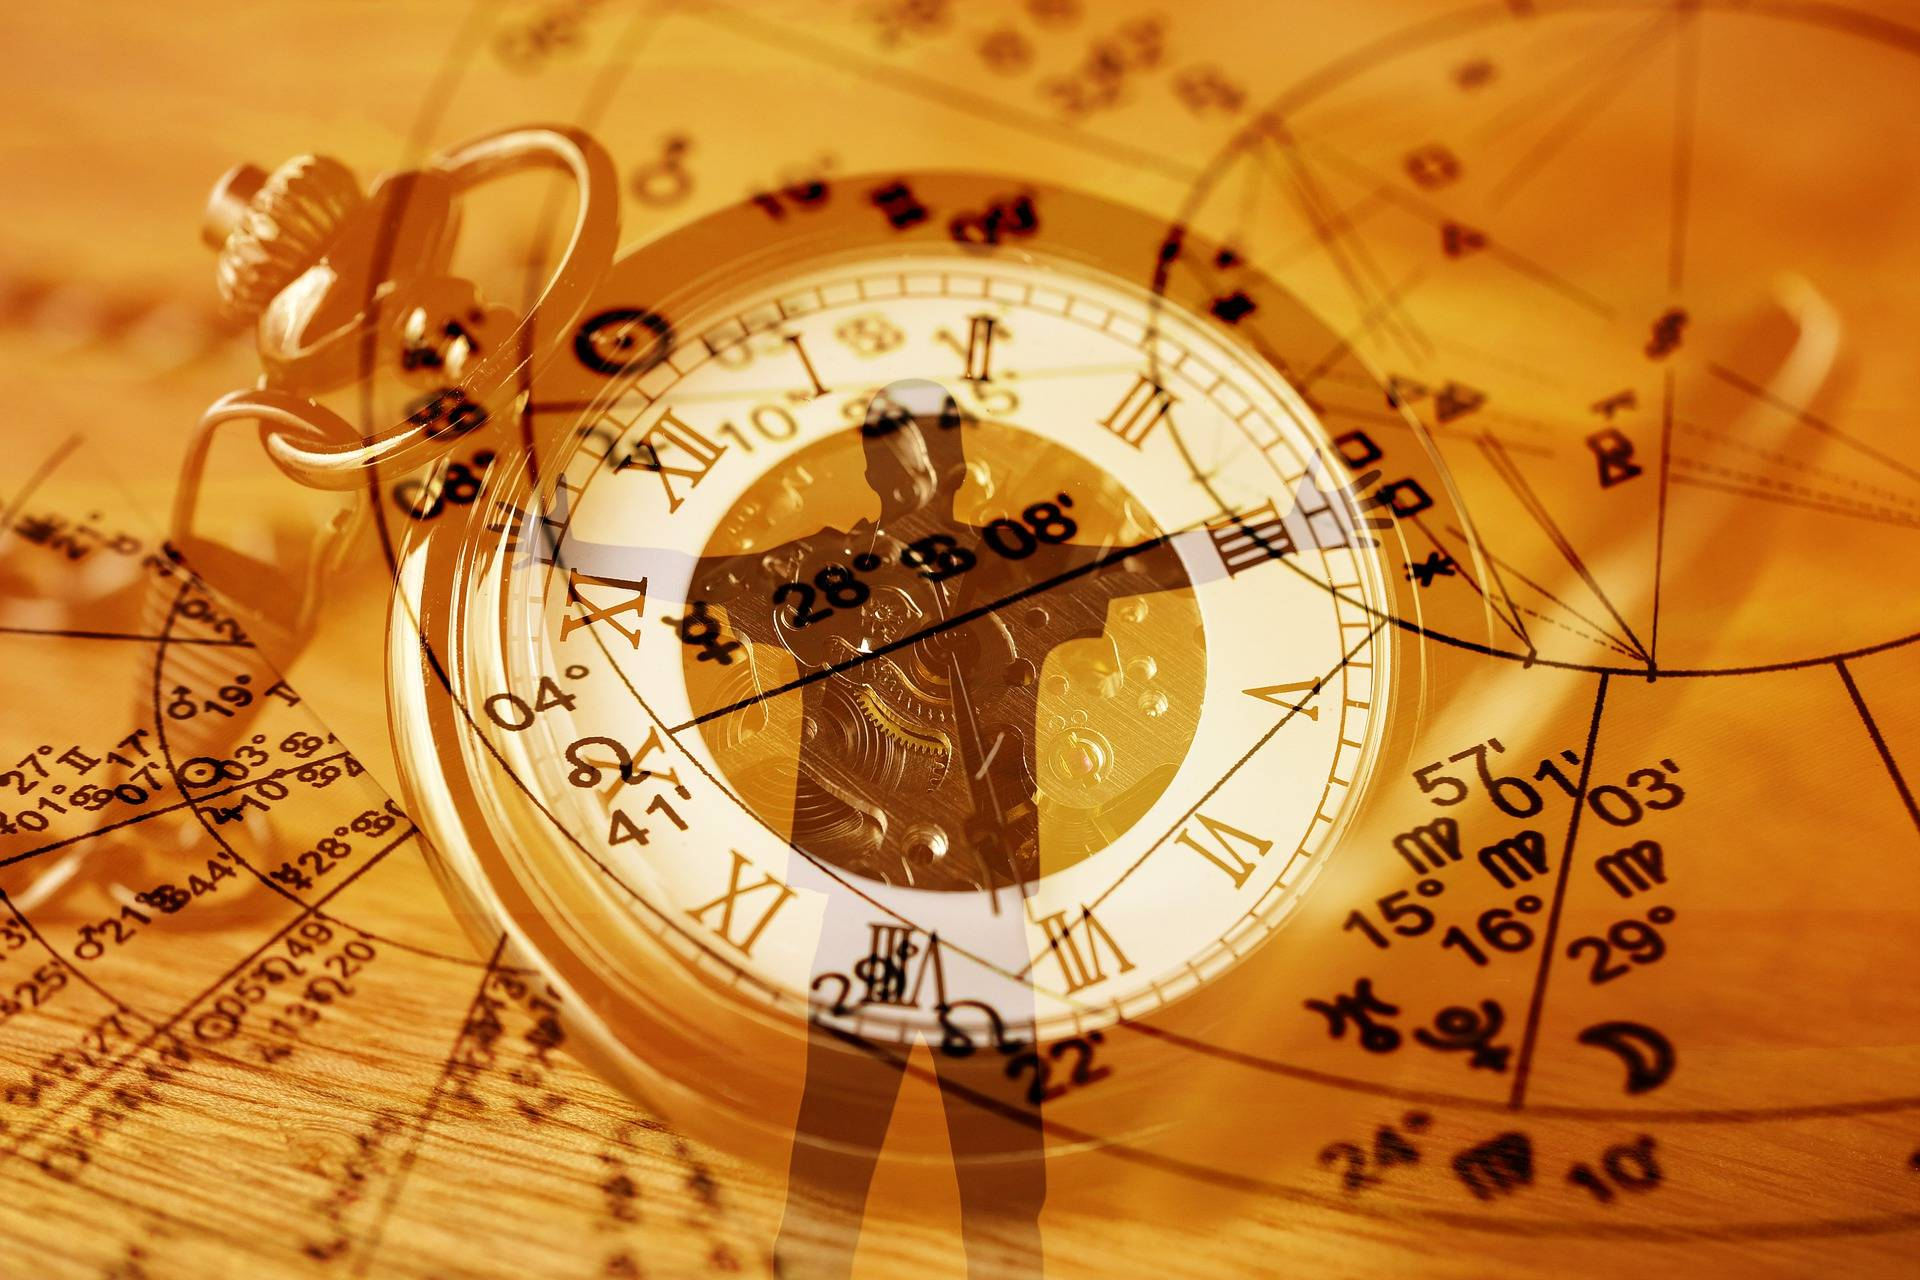 What is the Use of astrology in our life ?